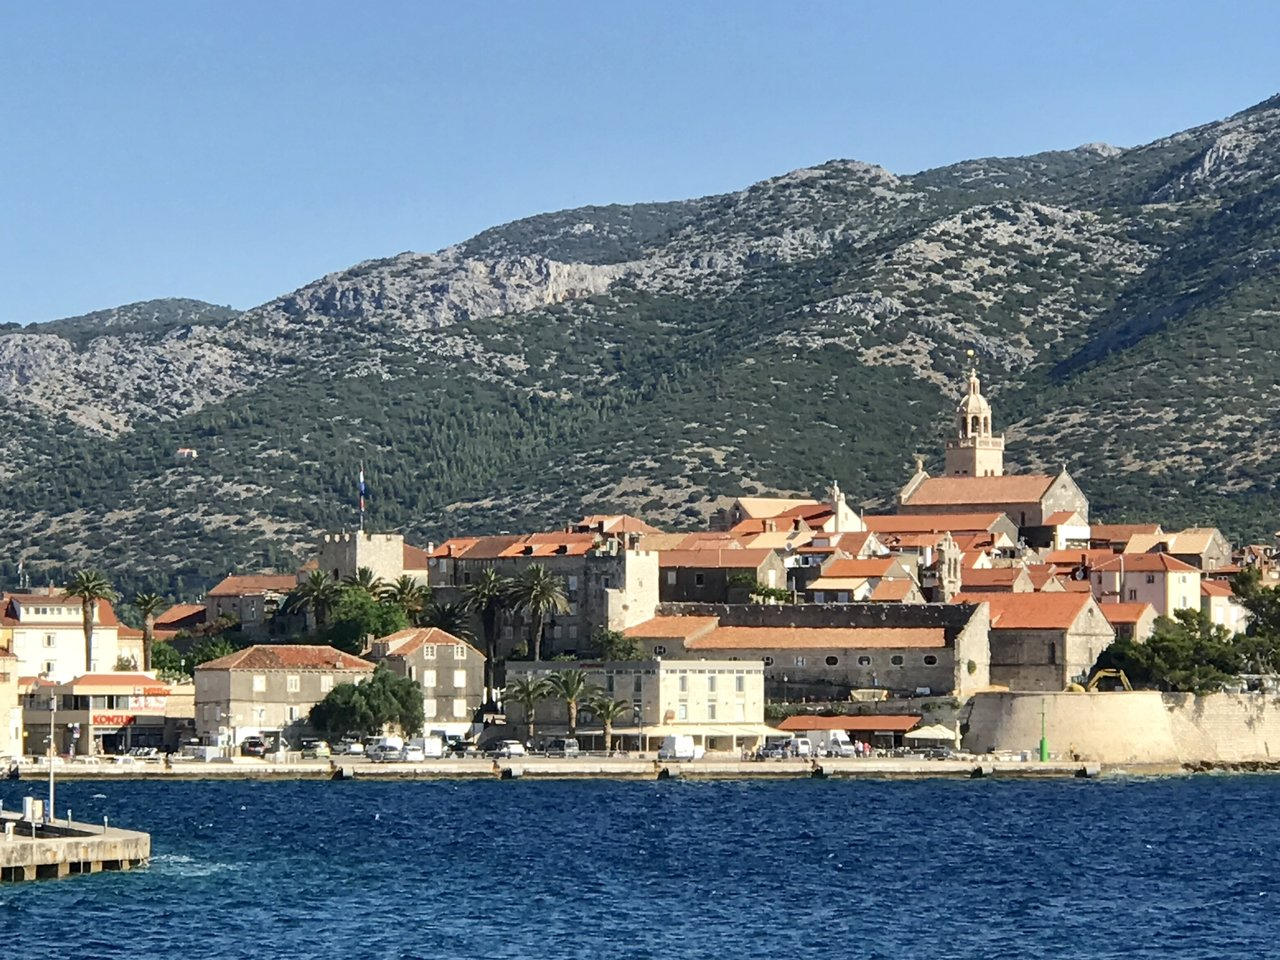 Korcula  | Photo taken by Rosemary L